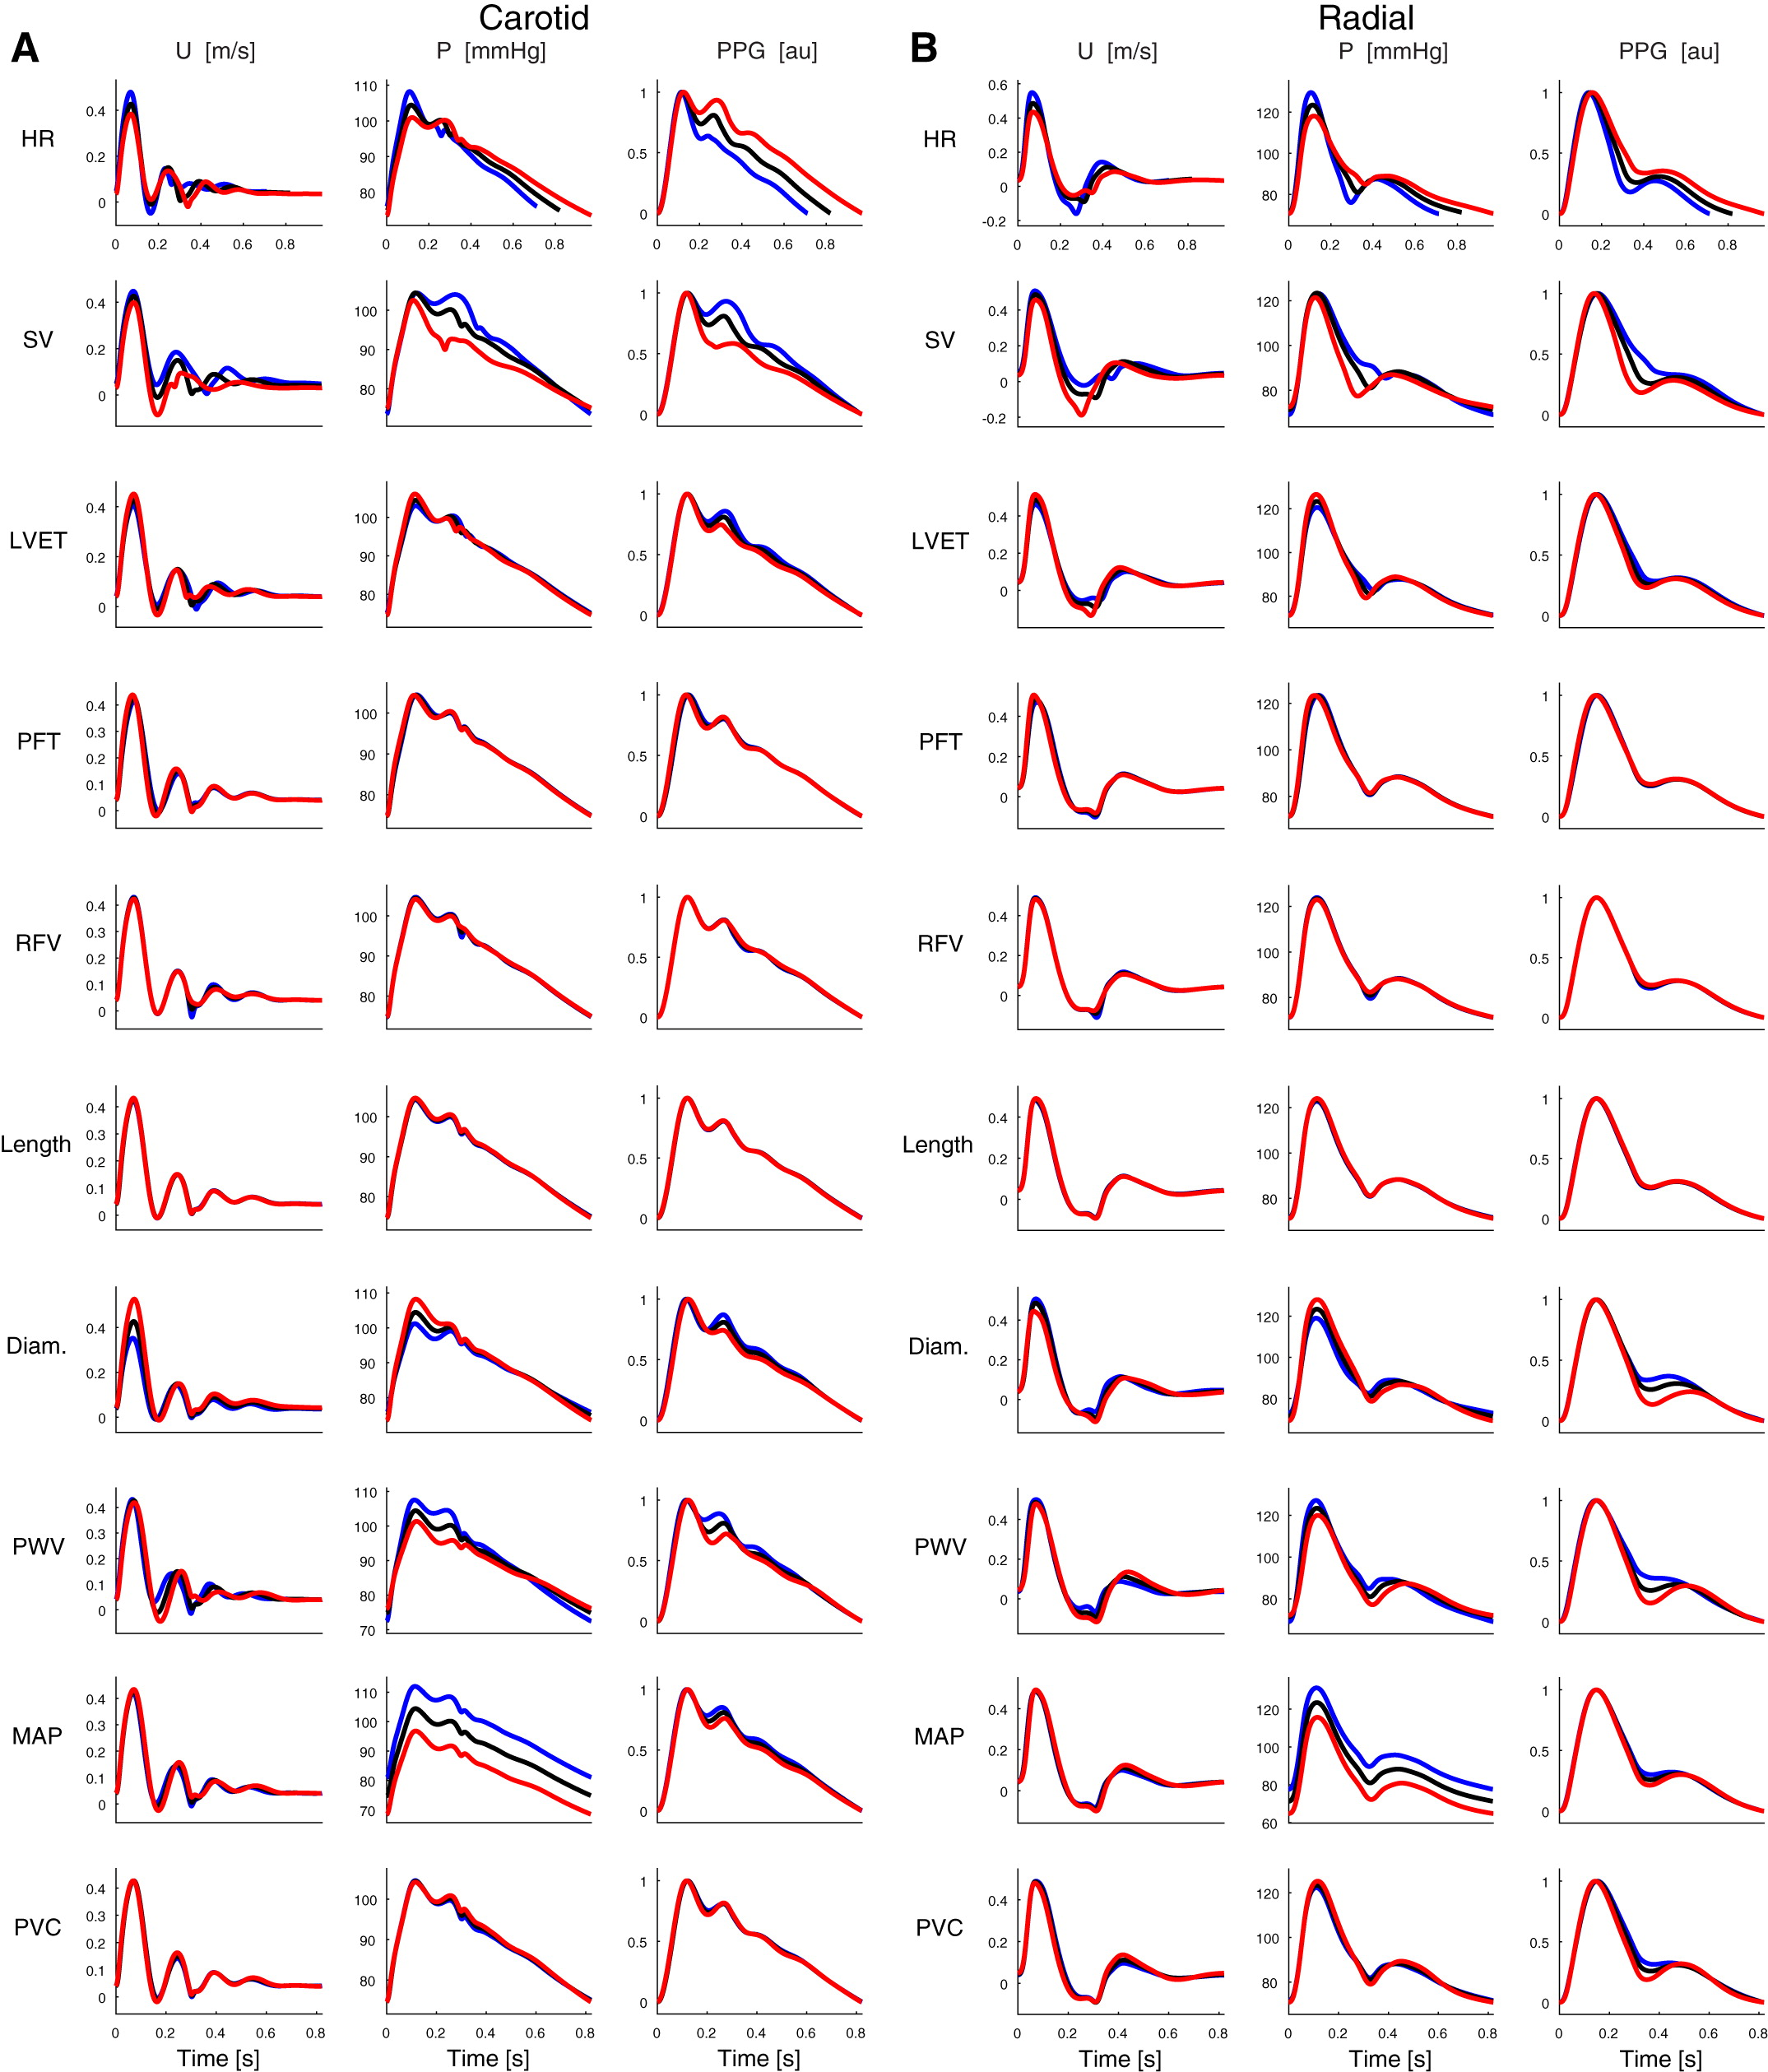 **Pulse waves (PWs) for the 25-yr-old subject at the carotid artery (A) and the radial artery (B).** The waves shown are at baseline (black), and those obtained when increasing (blue) and decreasing (red) each parameter independently by 1 SD from its baseline value. _Source: PH Charlton et al., doi: [10.1152/ajpheart.00218.2019](https://doi.org/10.1152/ajpheart.00218.2019) ([CC BY 4.0](https://creativecommons.org/licenses/by/4.0/))._